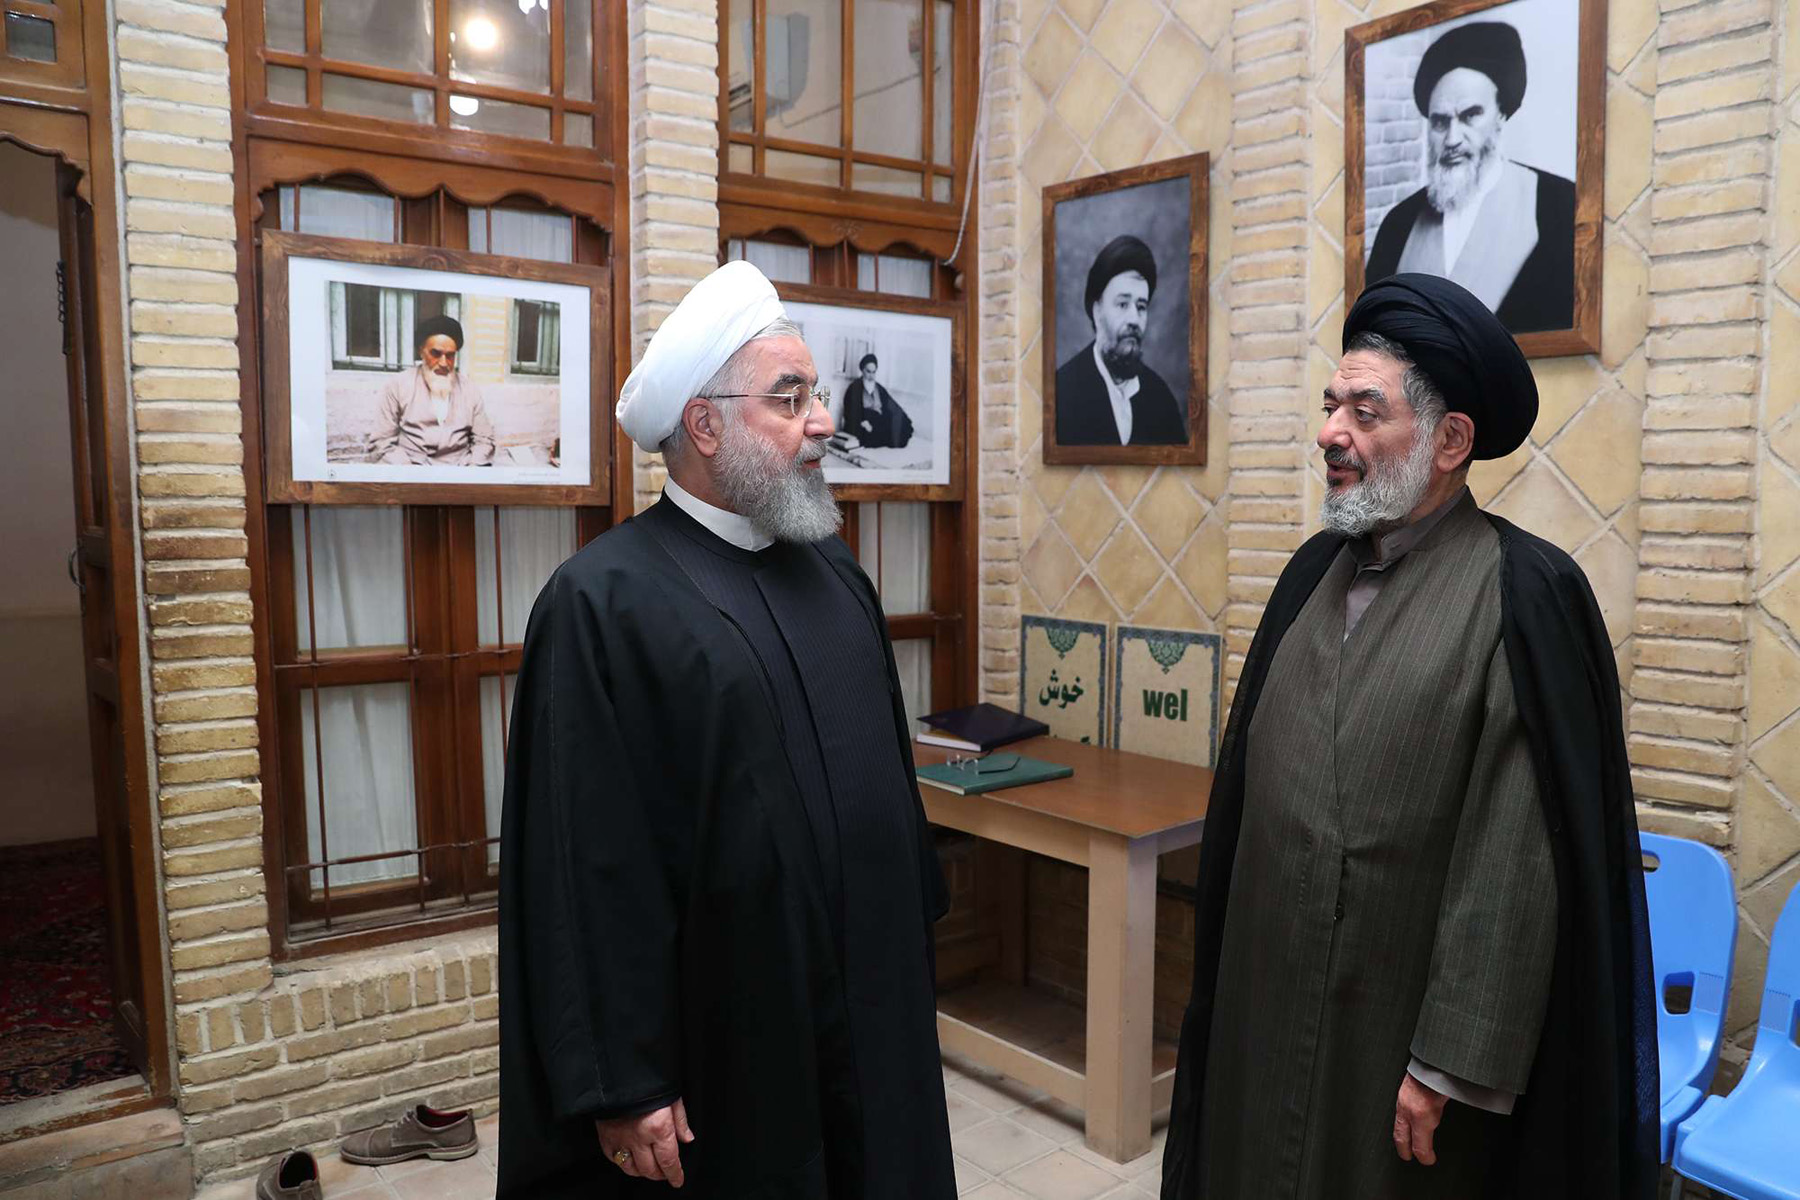 Iranian President Hassan Rouhani (L) visits the historical-cultural complex, in which Former Supreme Leader of Iran Ruhollah Khomeini spent his exile time, March 13, 2019. (DPA)